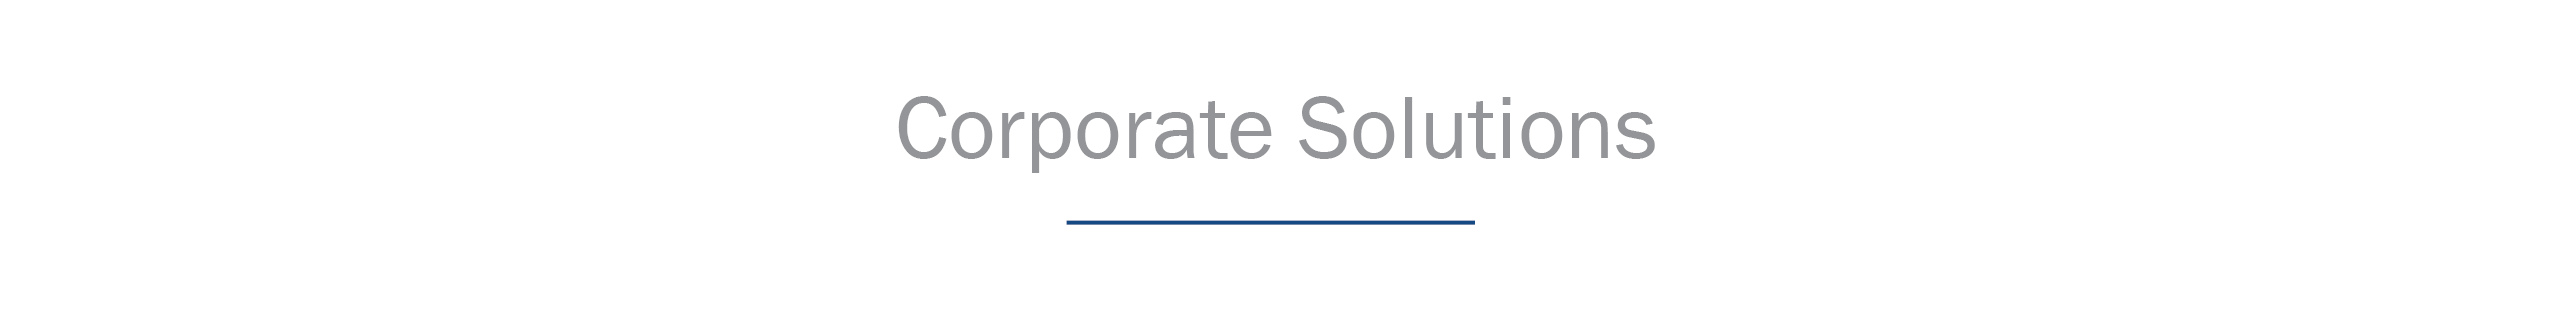 corporate_solutions